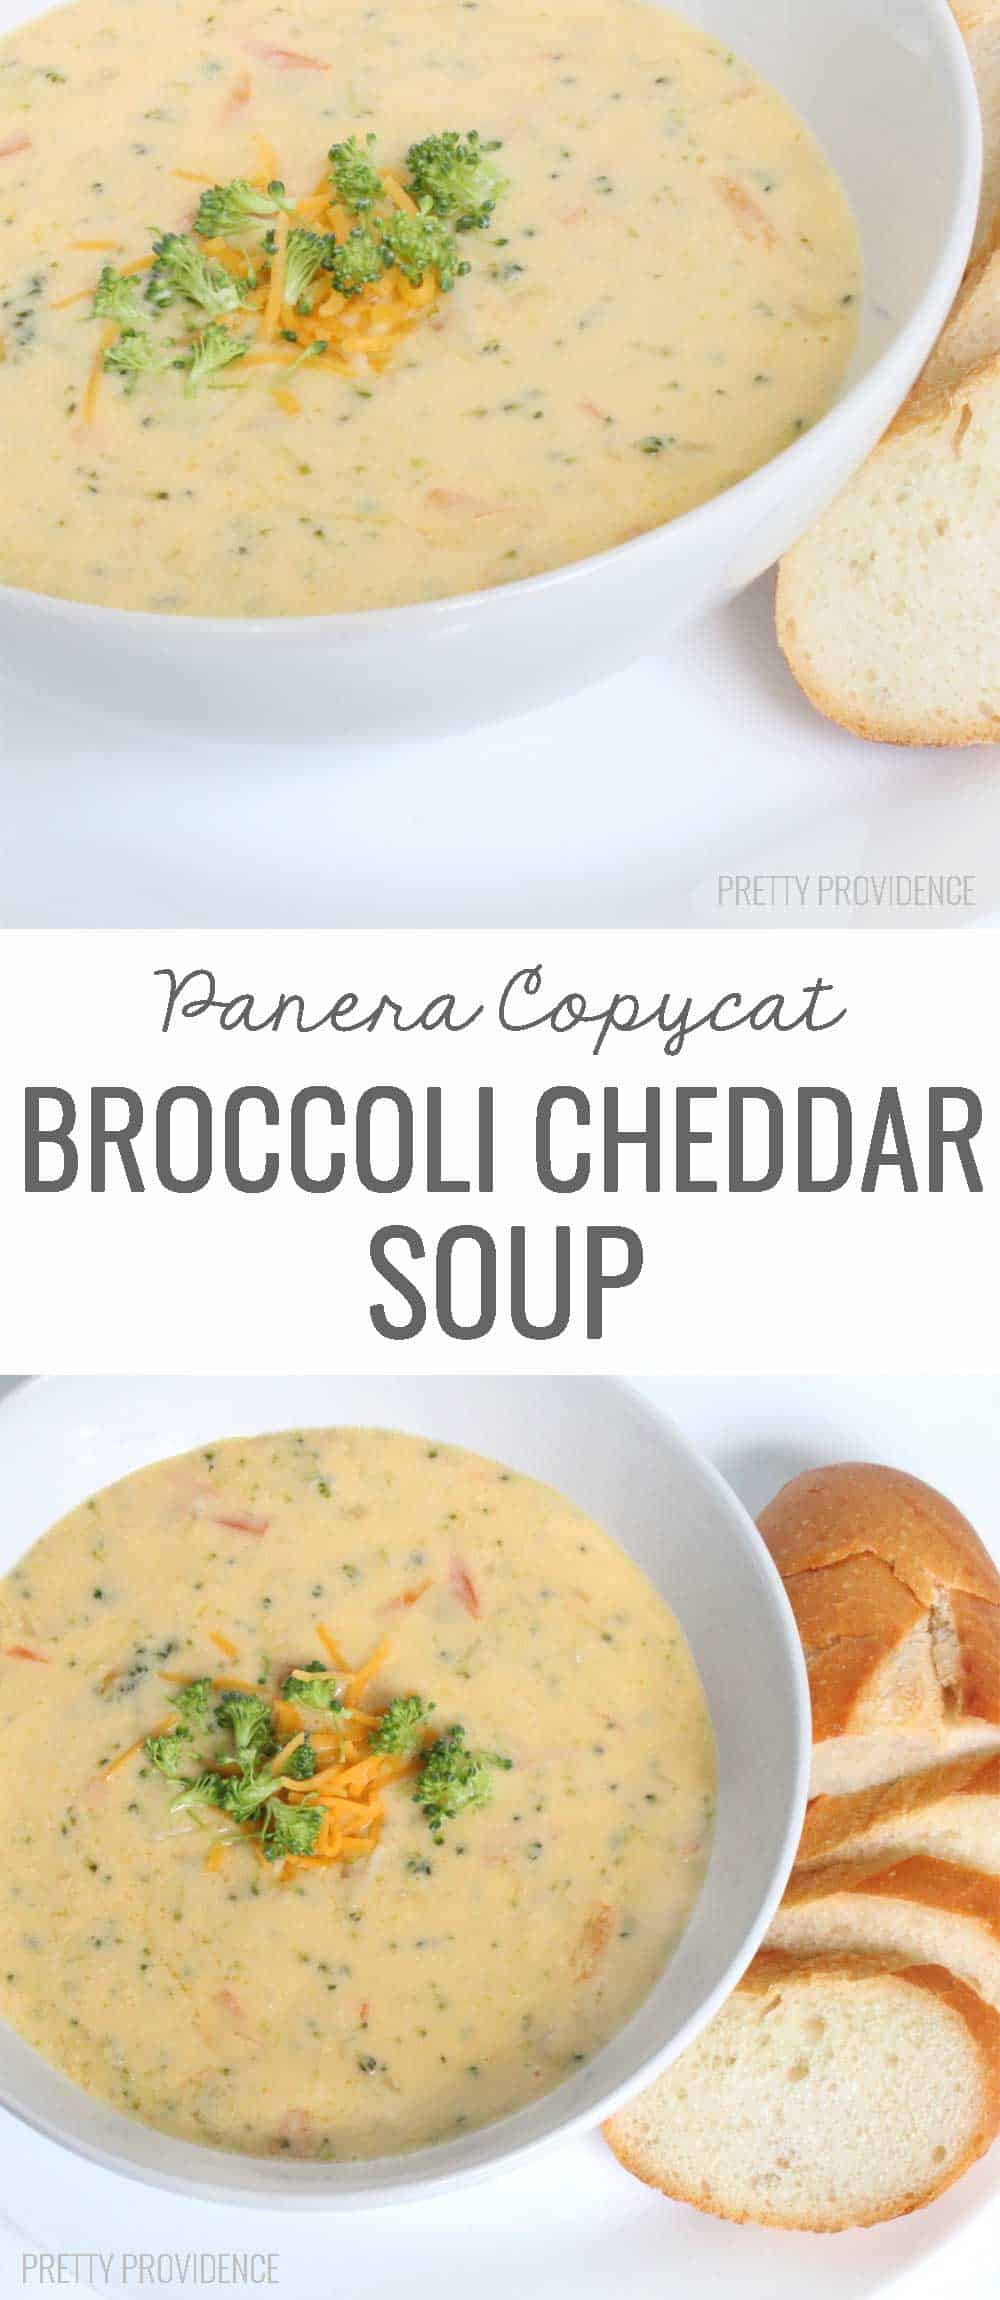 panera-broccoli-cheddar-soup-pin